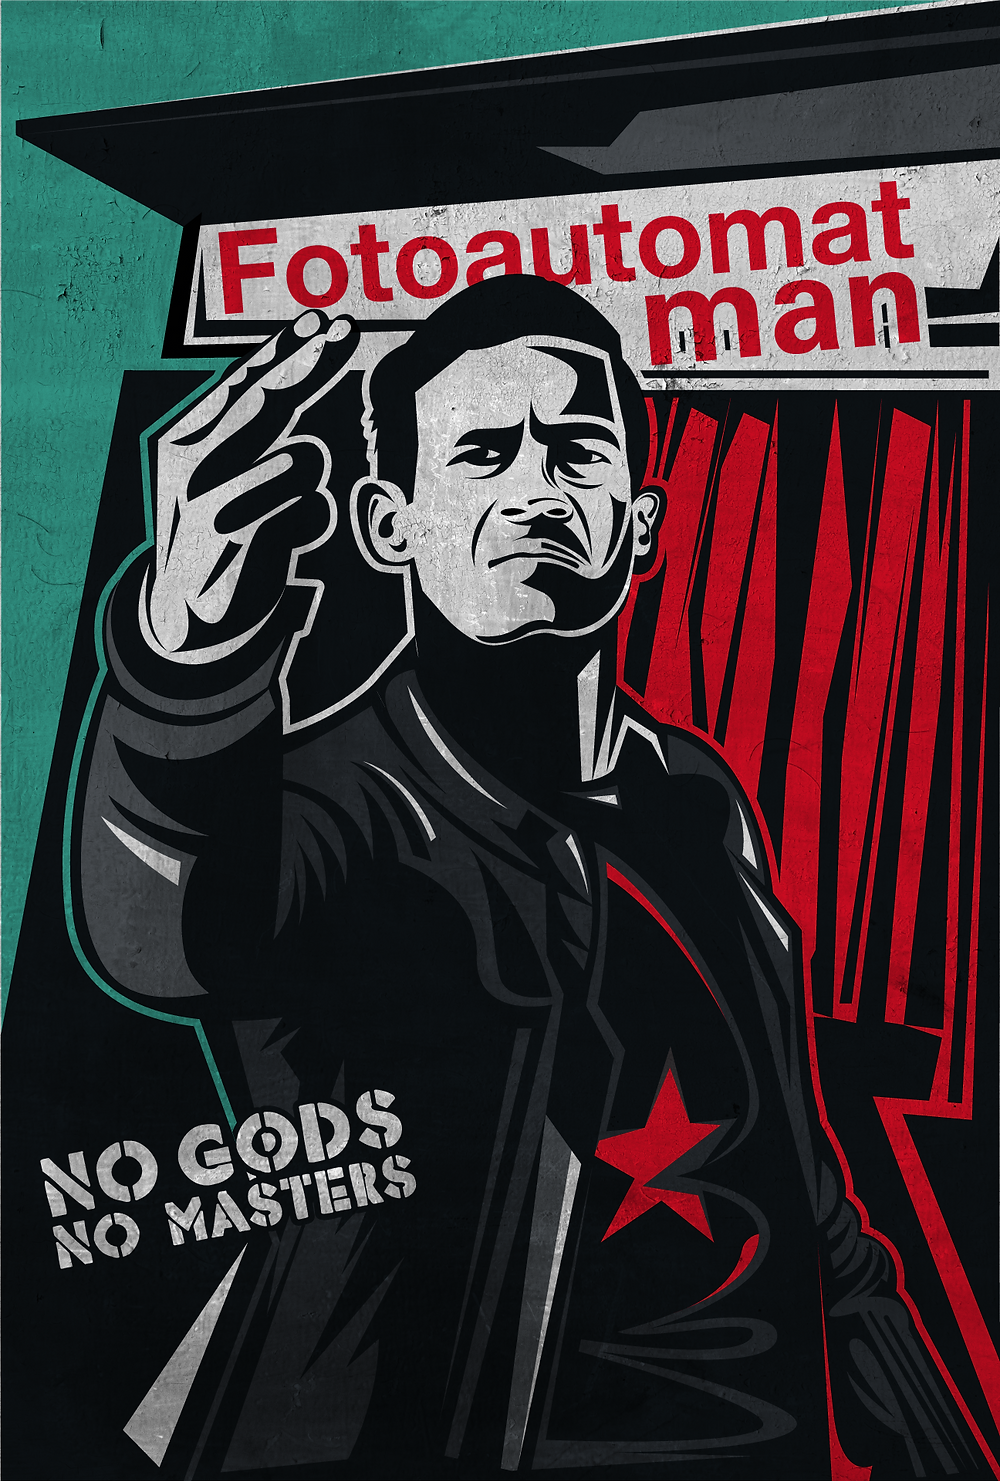 "Illustrated poster featuring Marco, the titular Fotoautomat man making a rude gesture outside one of the booths. The text ""No Gods No Masters"" written to the side of him."